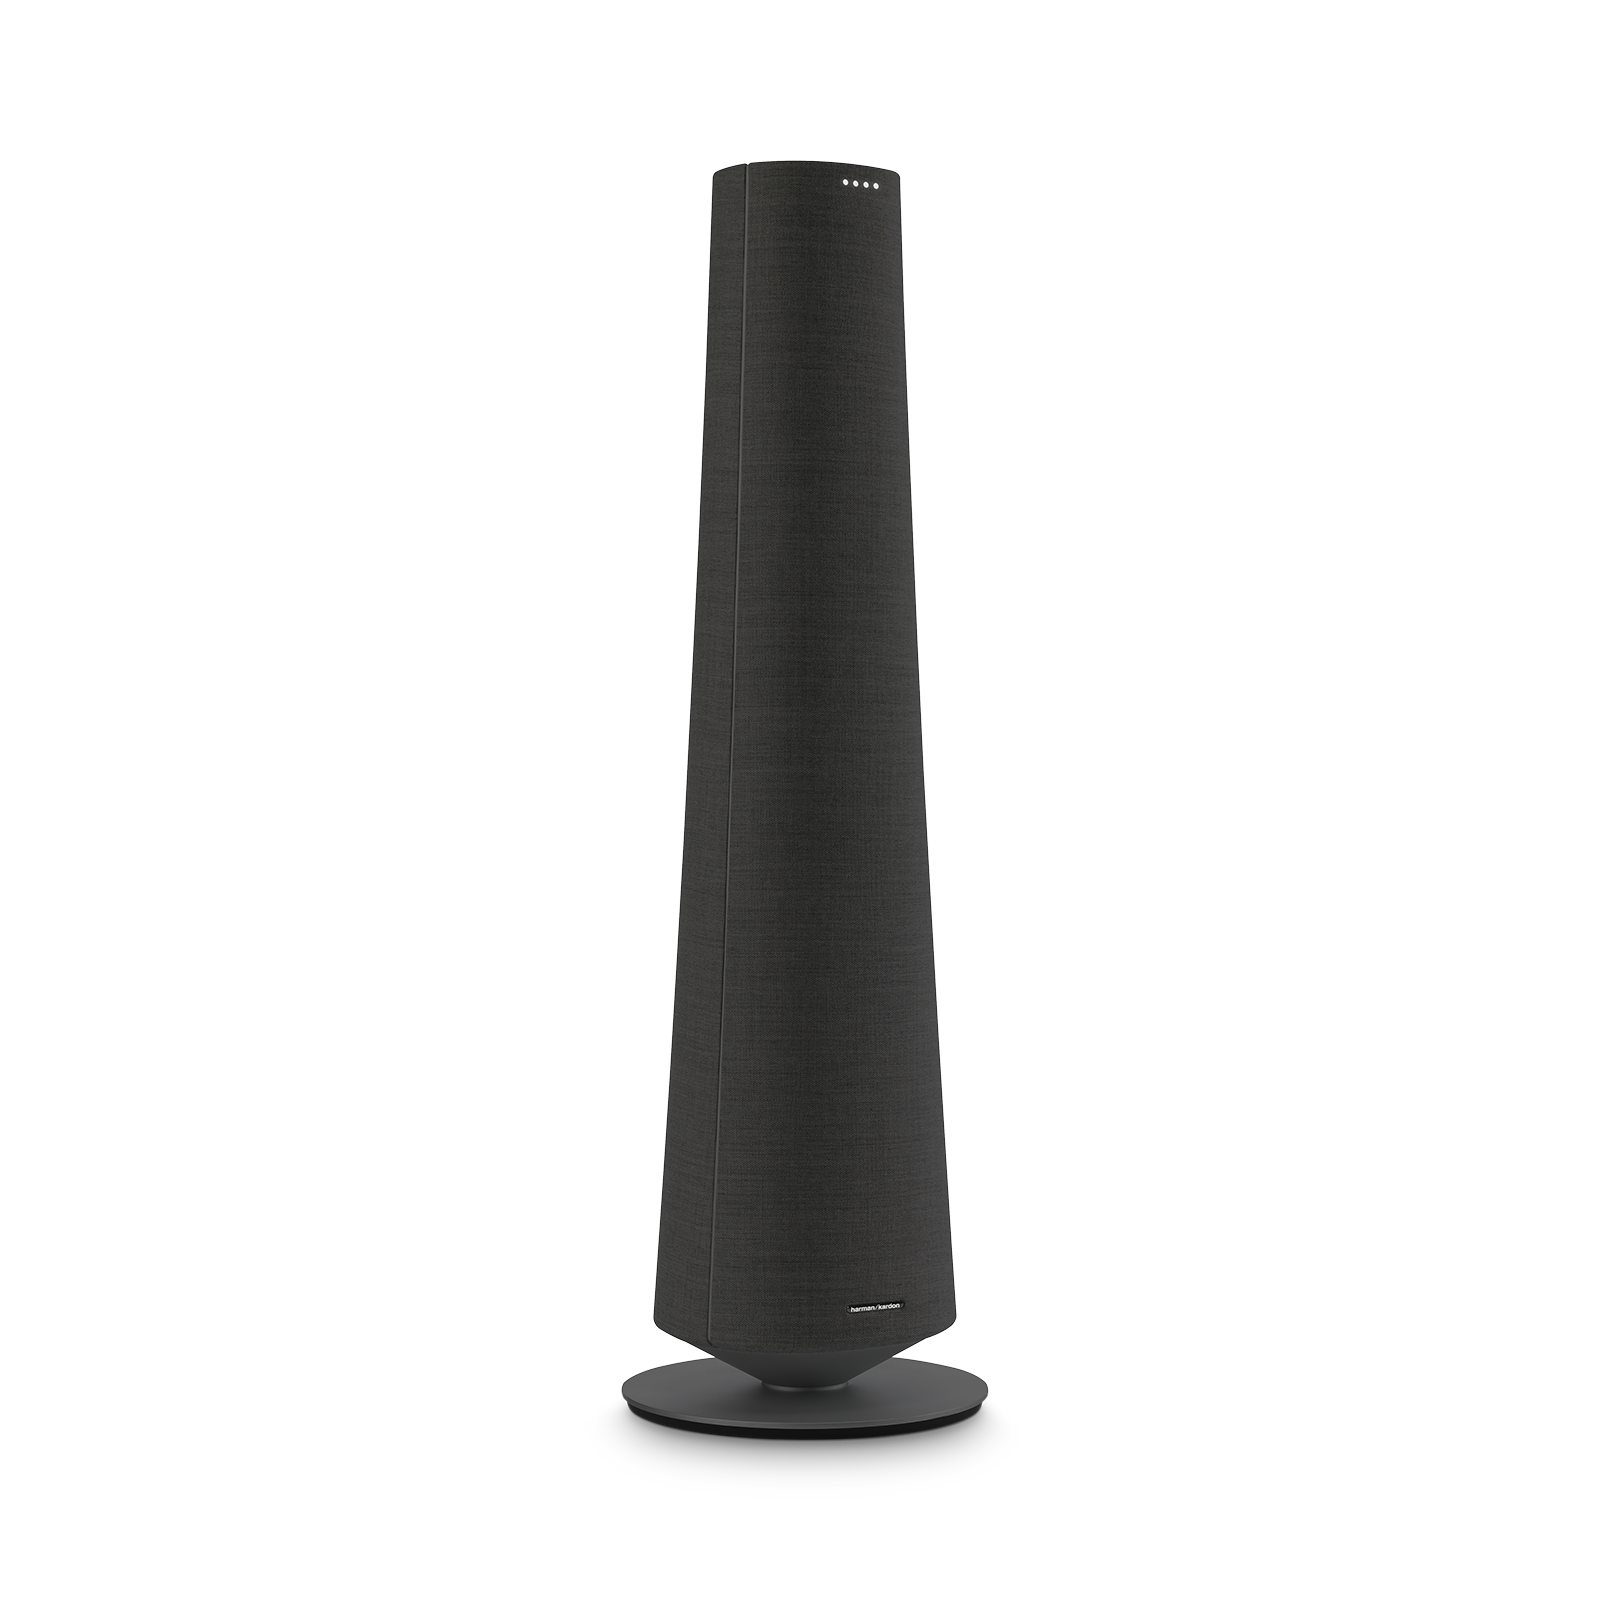 Harman Kardon Citation Tower - Black - Smart Premium Floorstanding Speaker that delivers an impactful performance - Detailshot 2